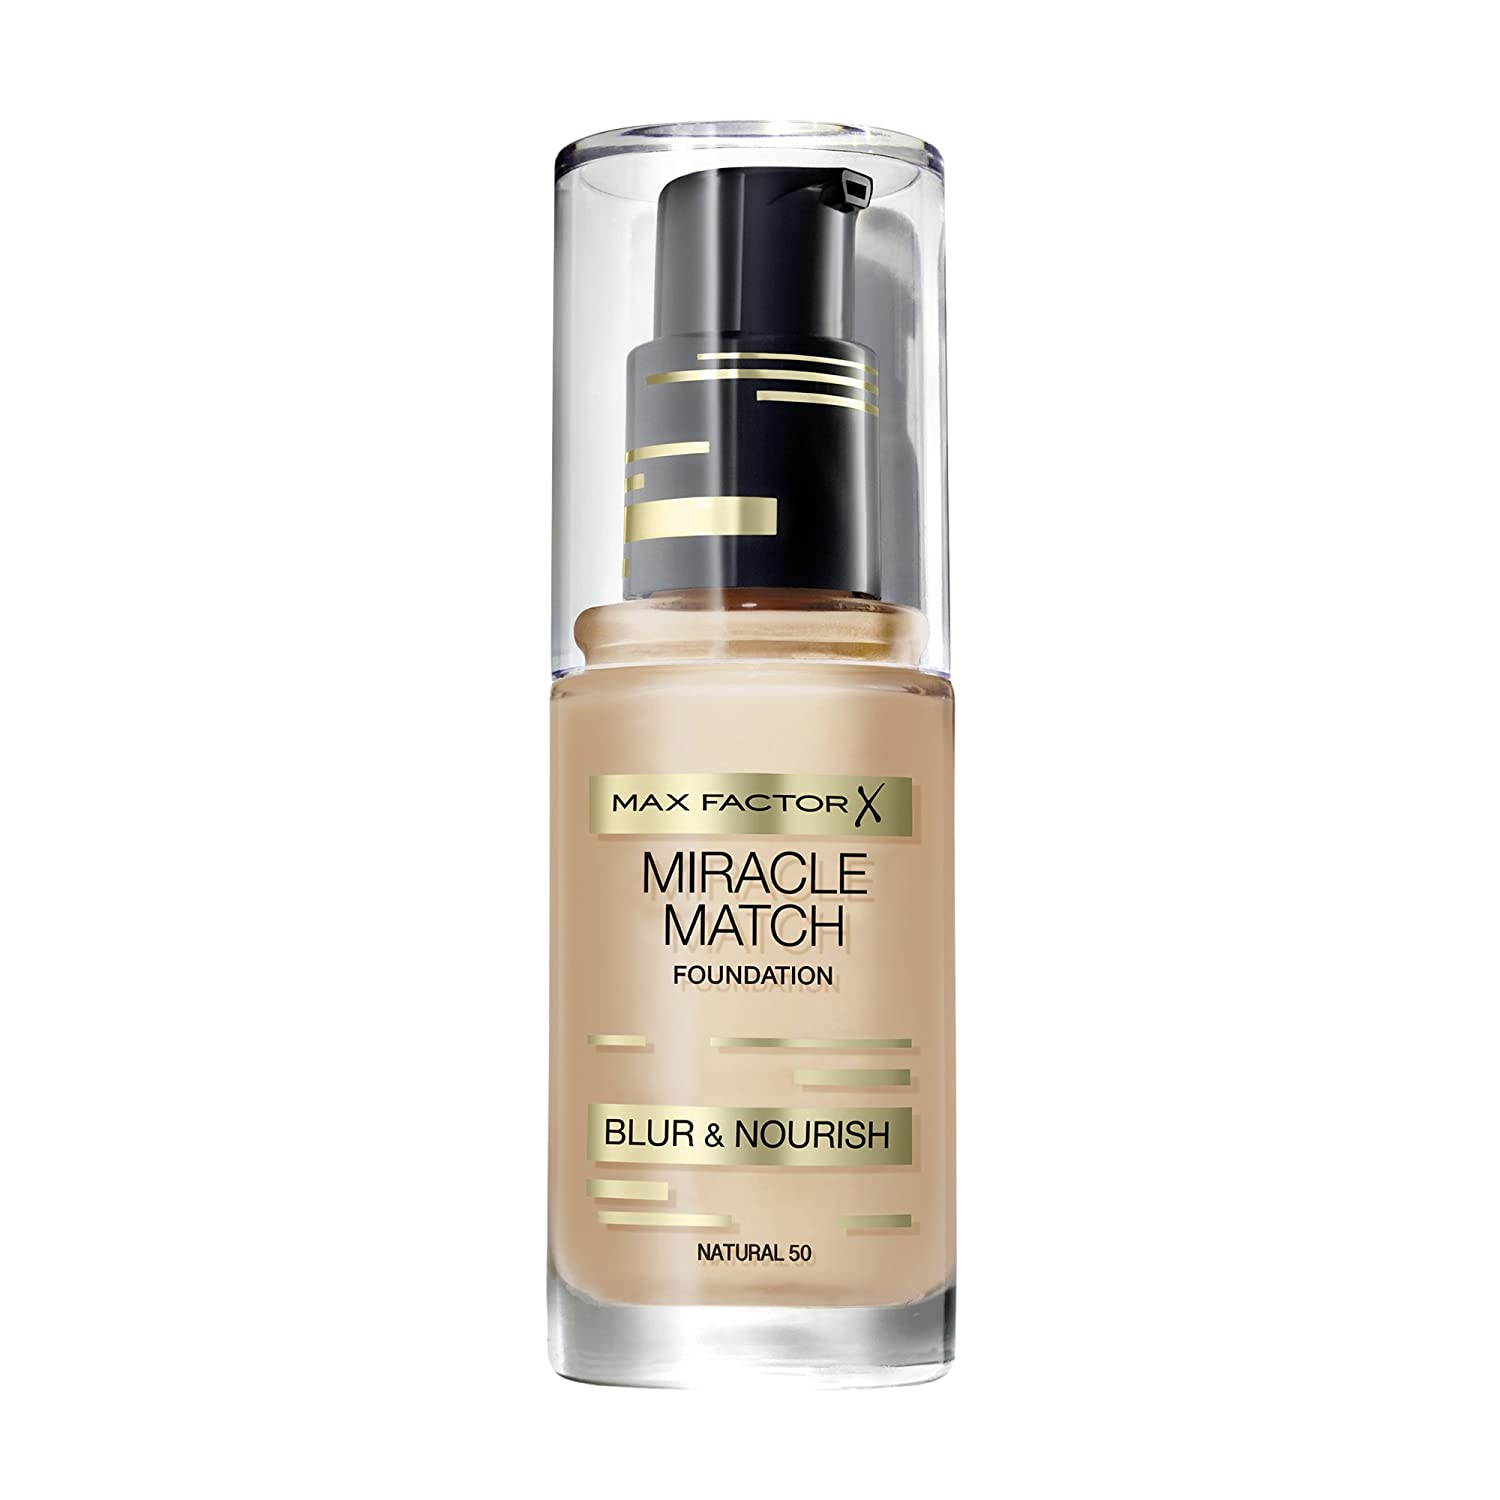 Max Factor Miracle Match Foundation 60 sand, 1er Pack (1 x 30 g) 81507984